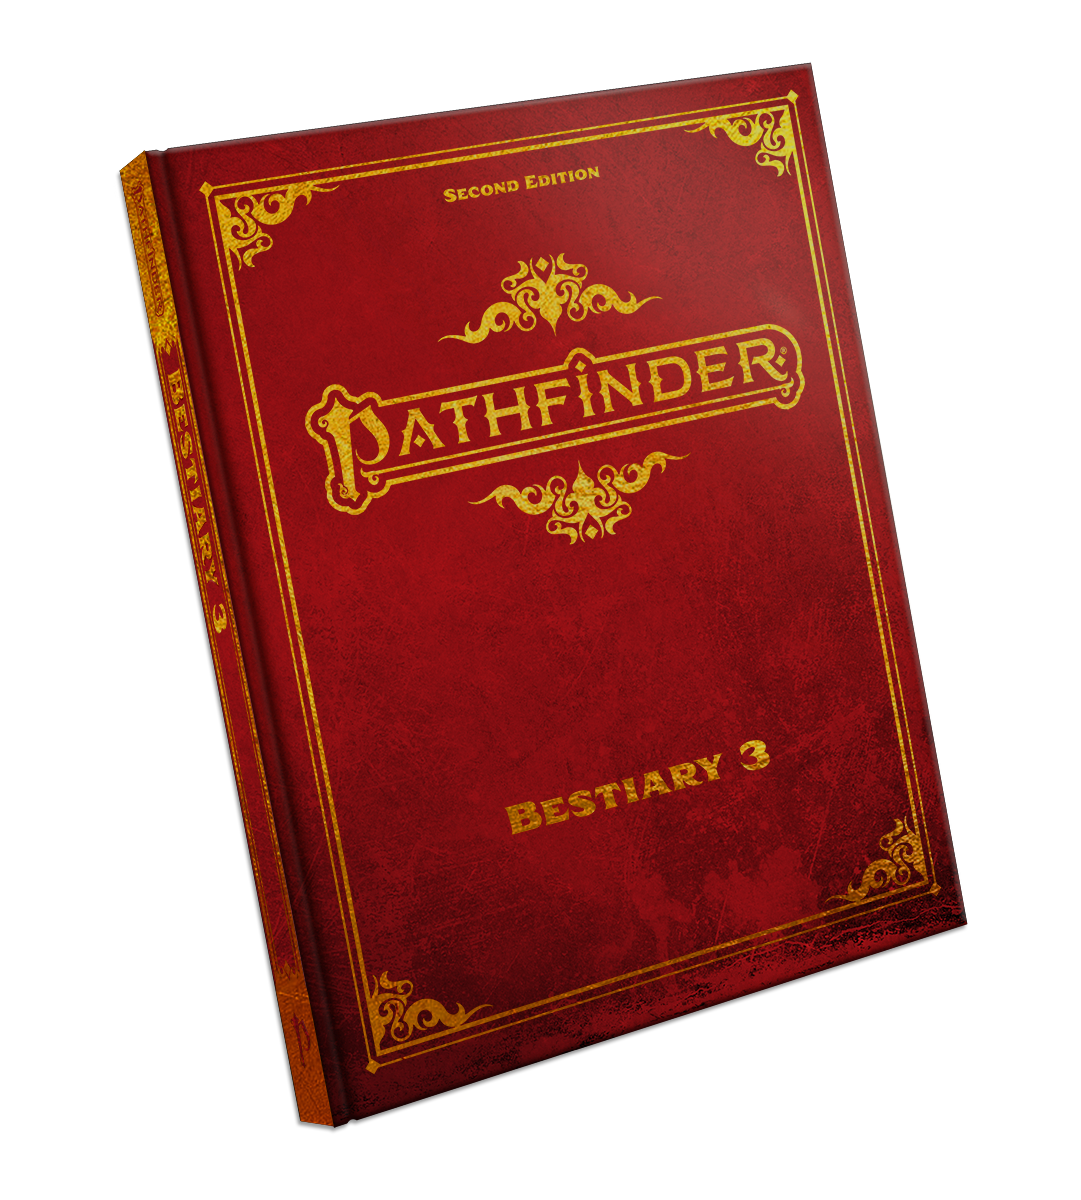 Pathfinder 2E - Bestiary 3 Special Edition 2107-SE